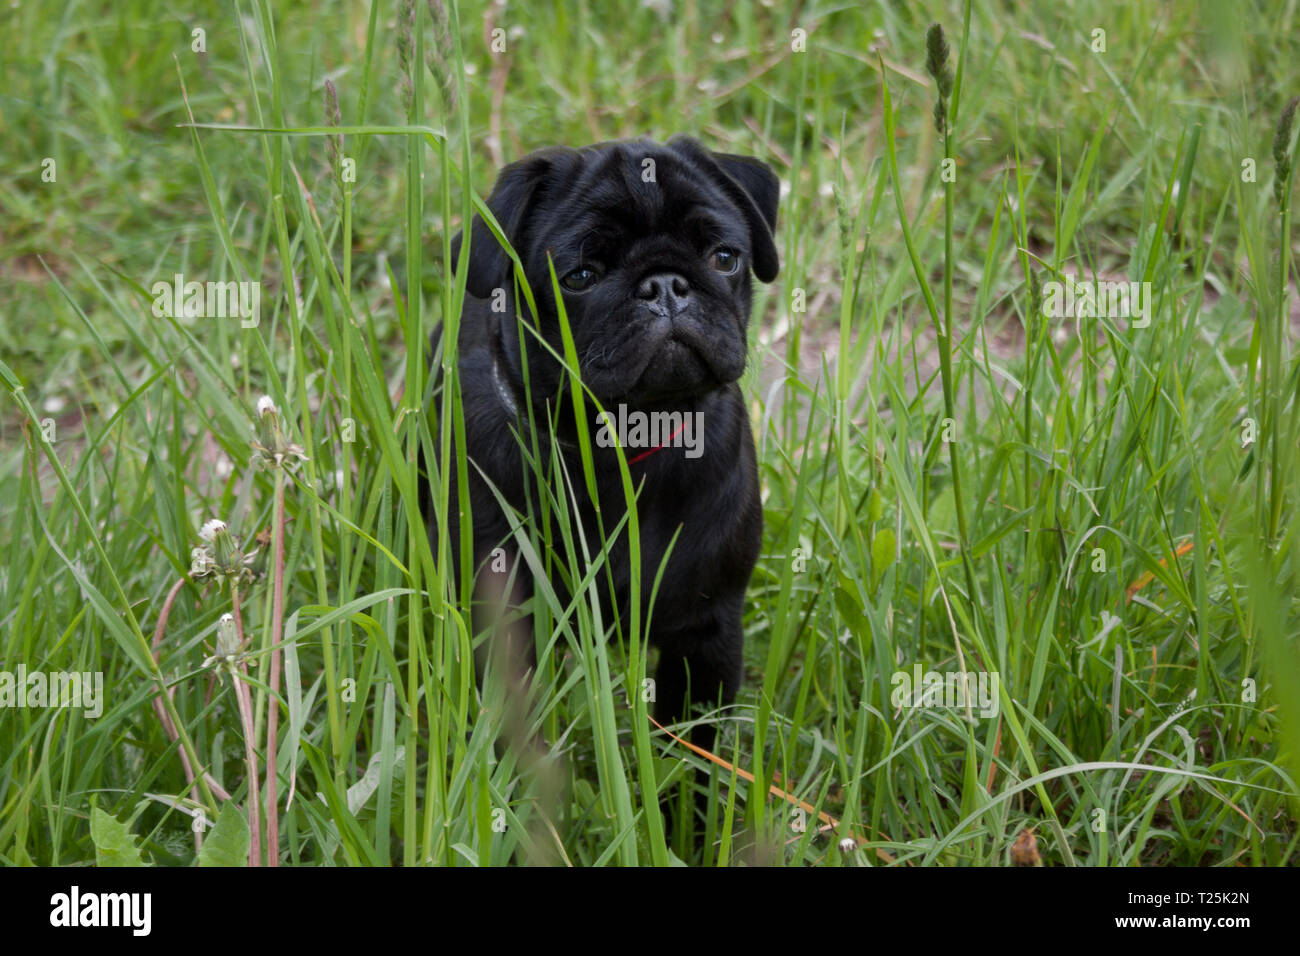 Chinese pug puppy is sitting in the green grass. Dutch mastiff or mops. Pet animals. - Stock Image